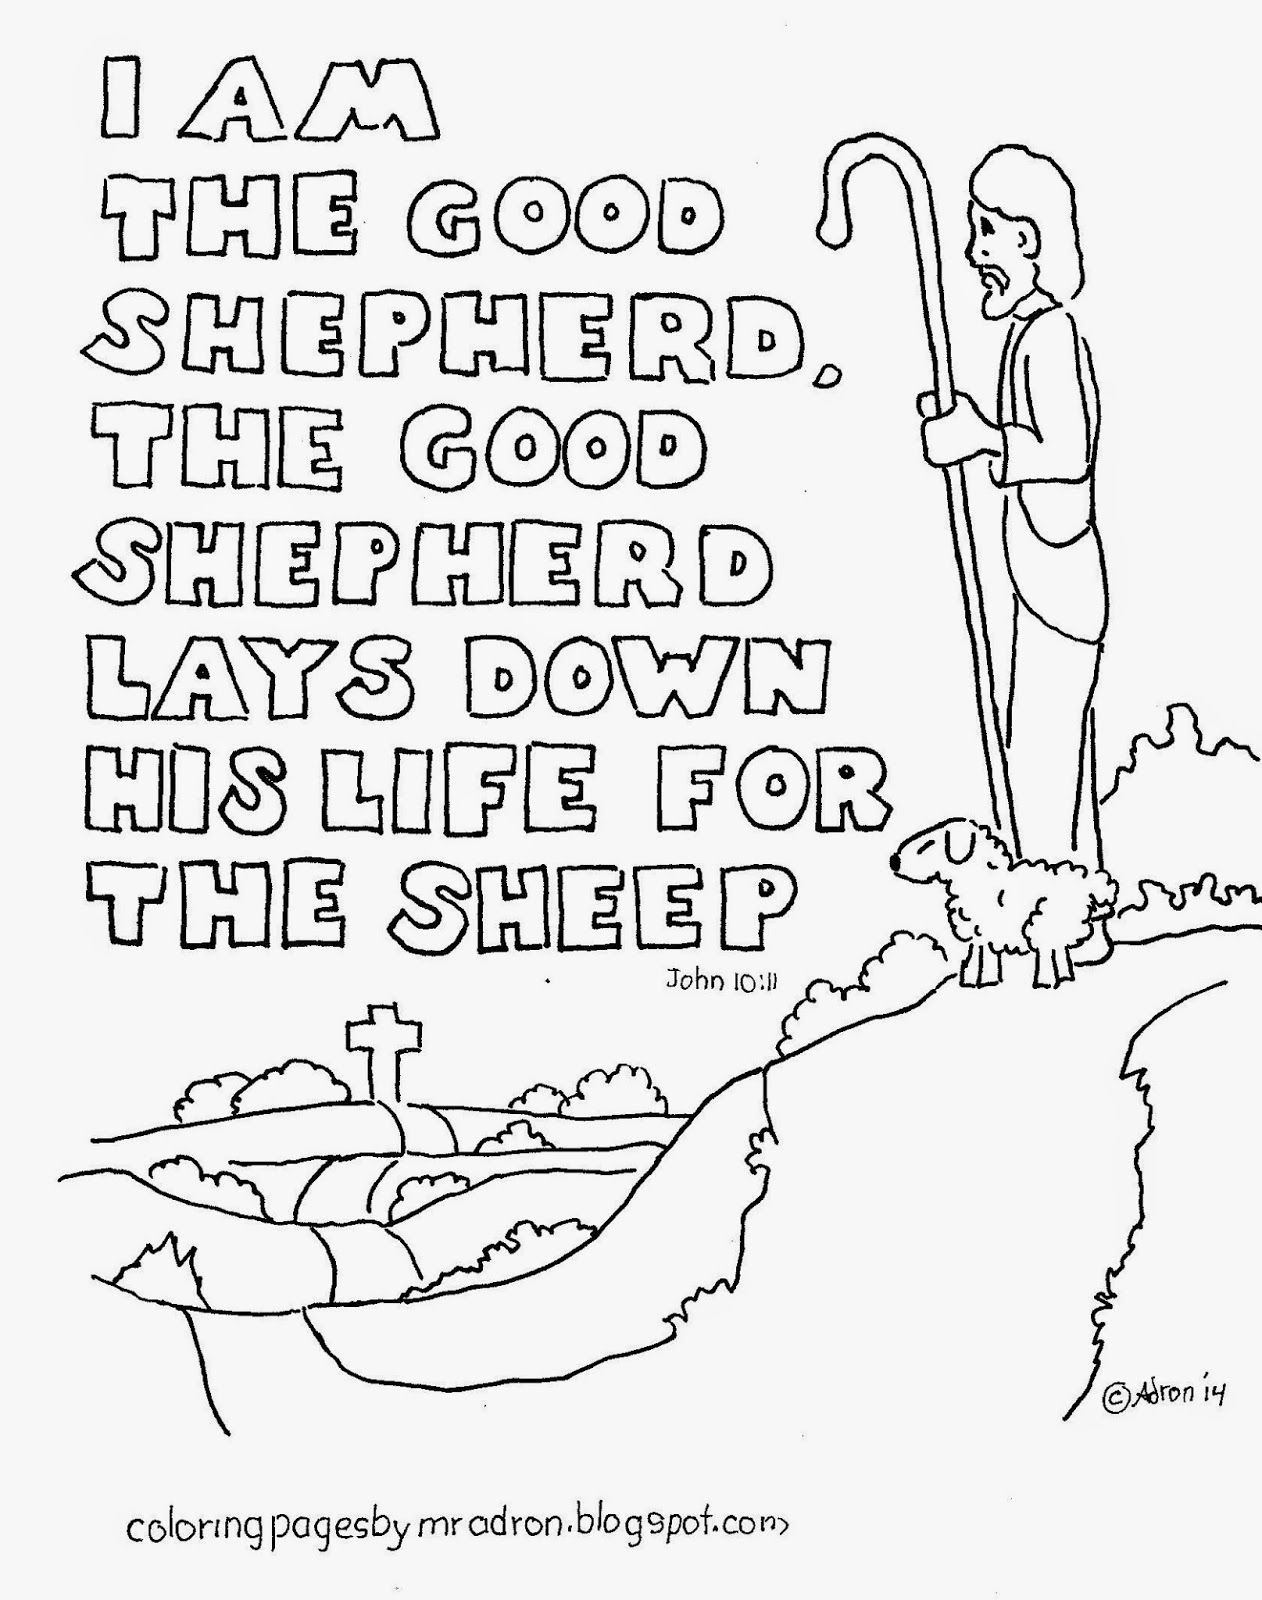 I Am The Good Shepherd Free Bible Verse Coloring Page